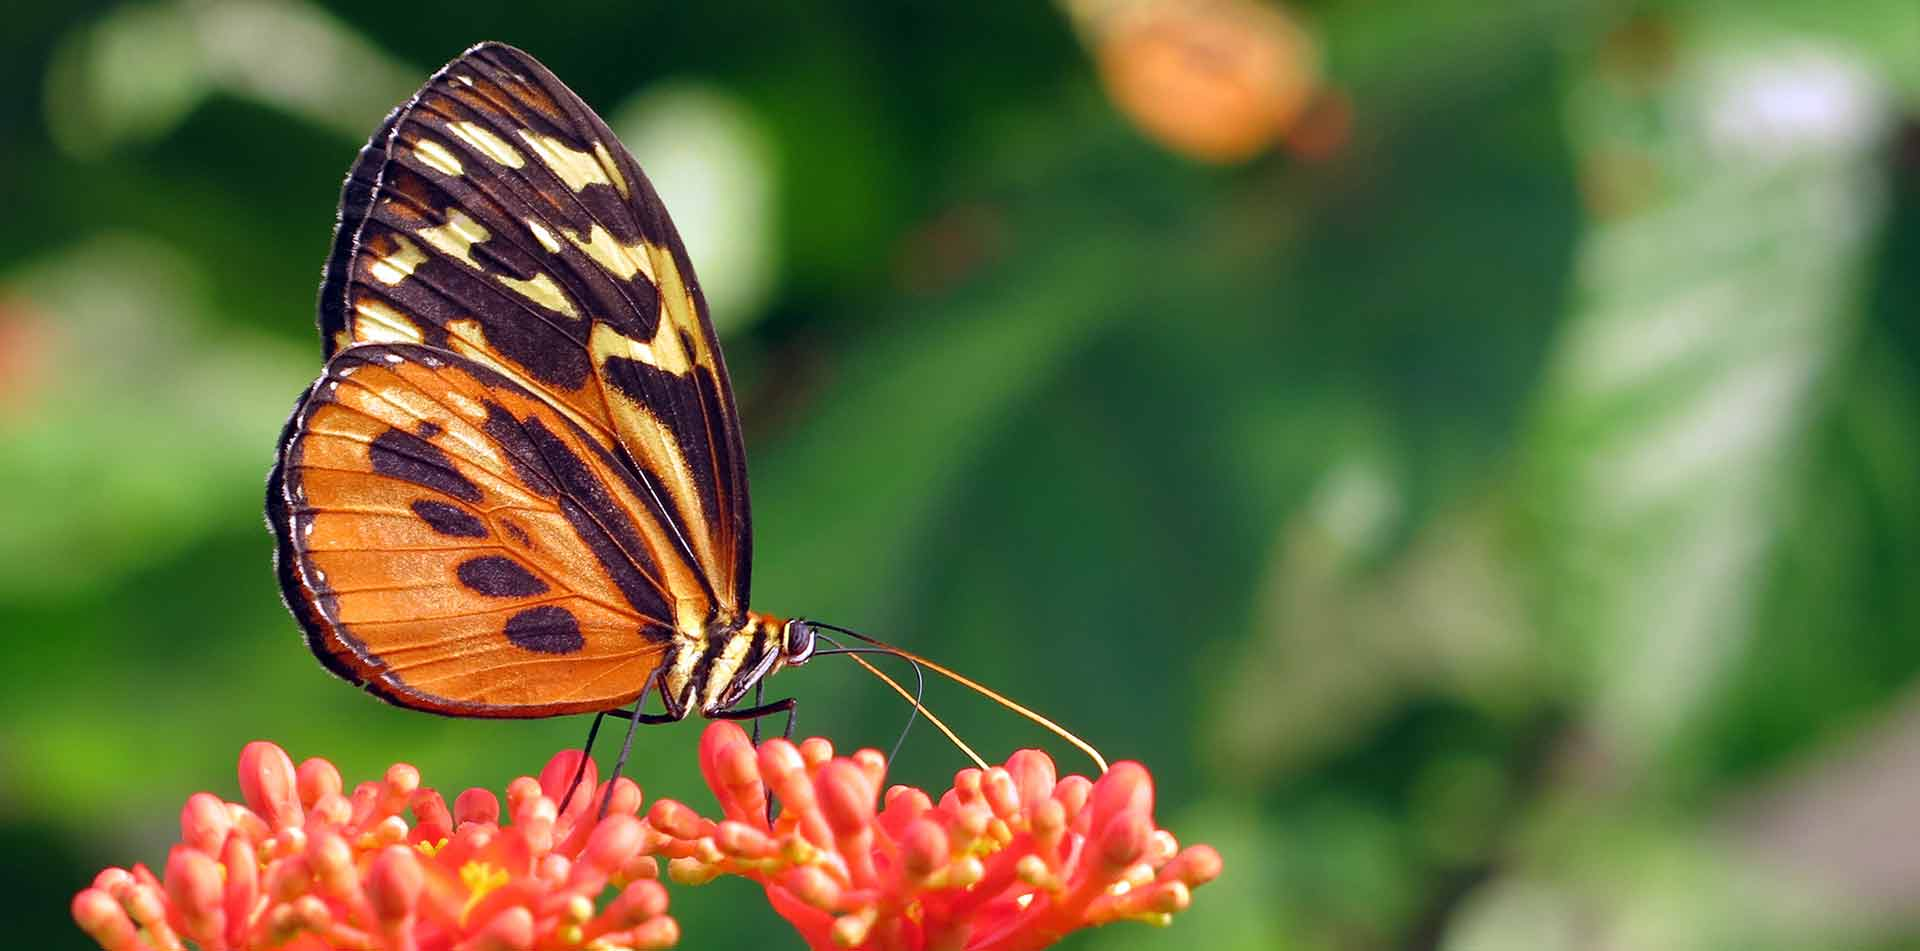 South America Peru butterfly on a flower in Peruvian Amazon rainforest - luxury vacation destinations